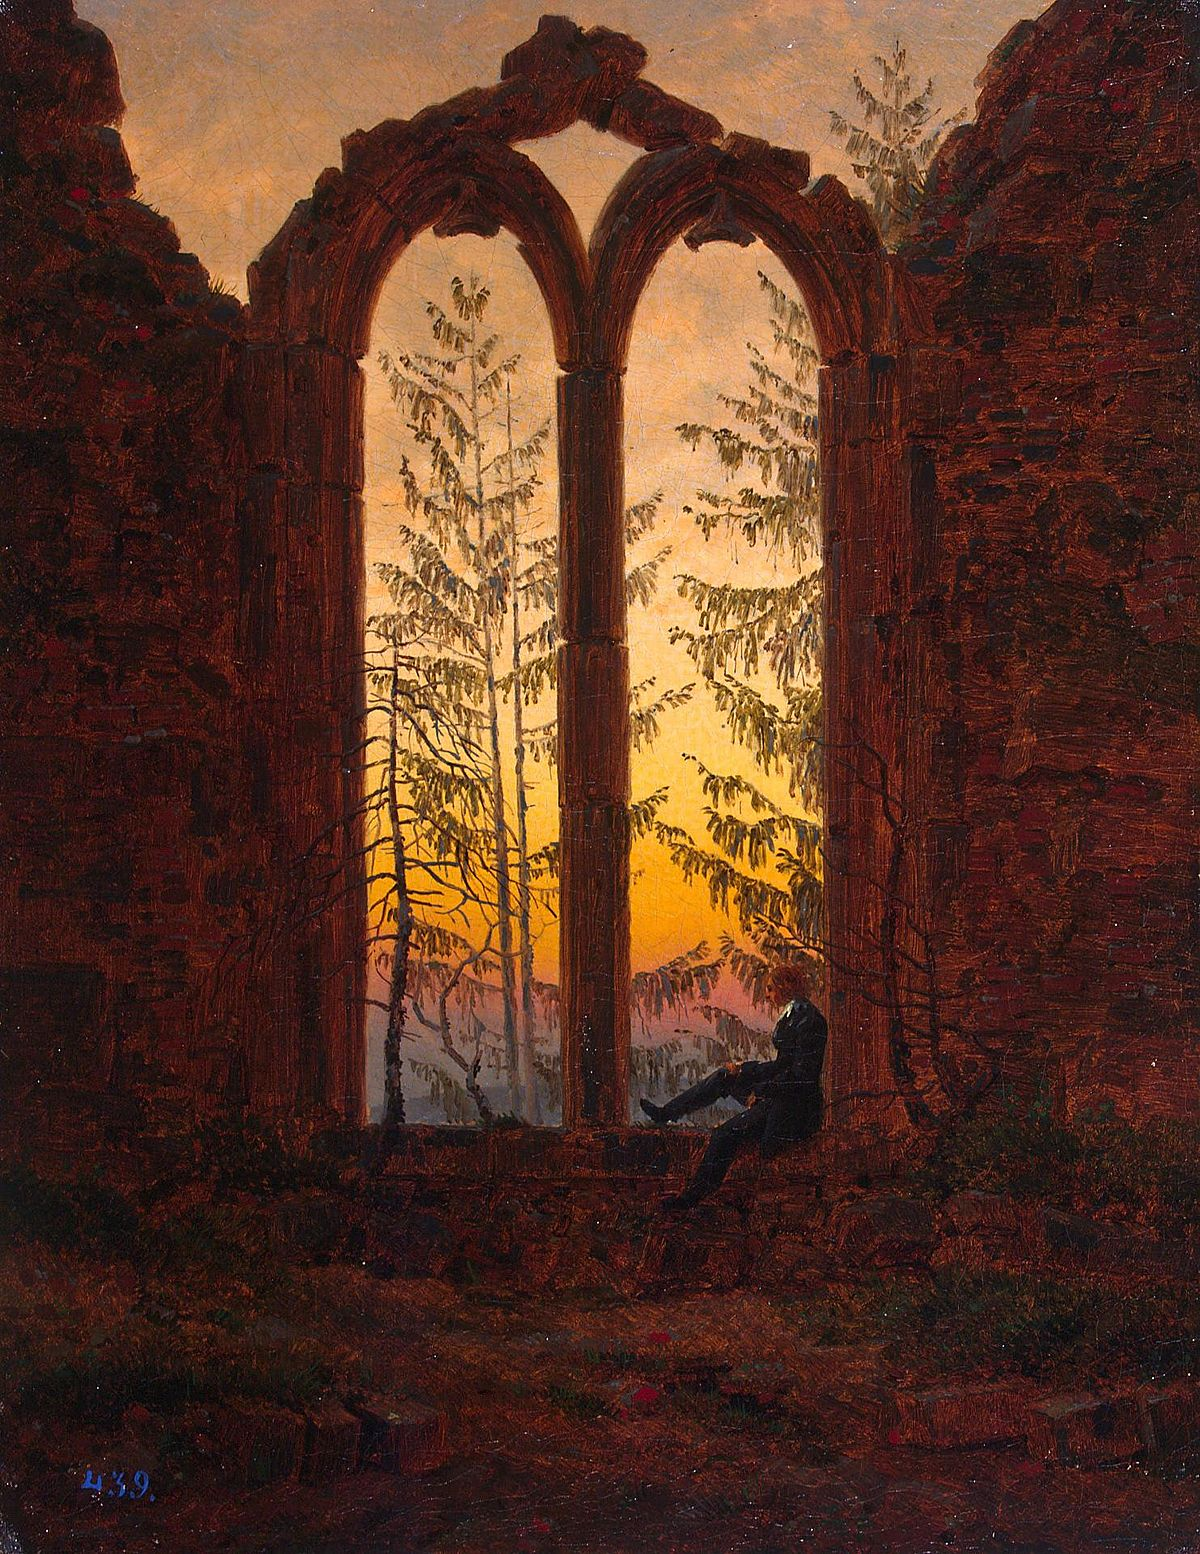 Le rêveur, Caspar David Friedrich, 1840